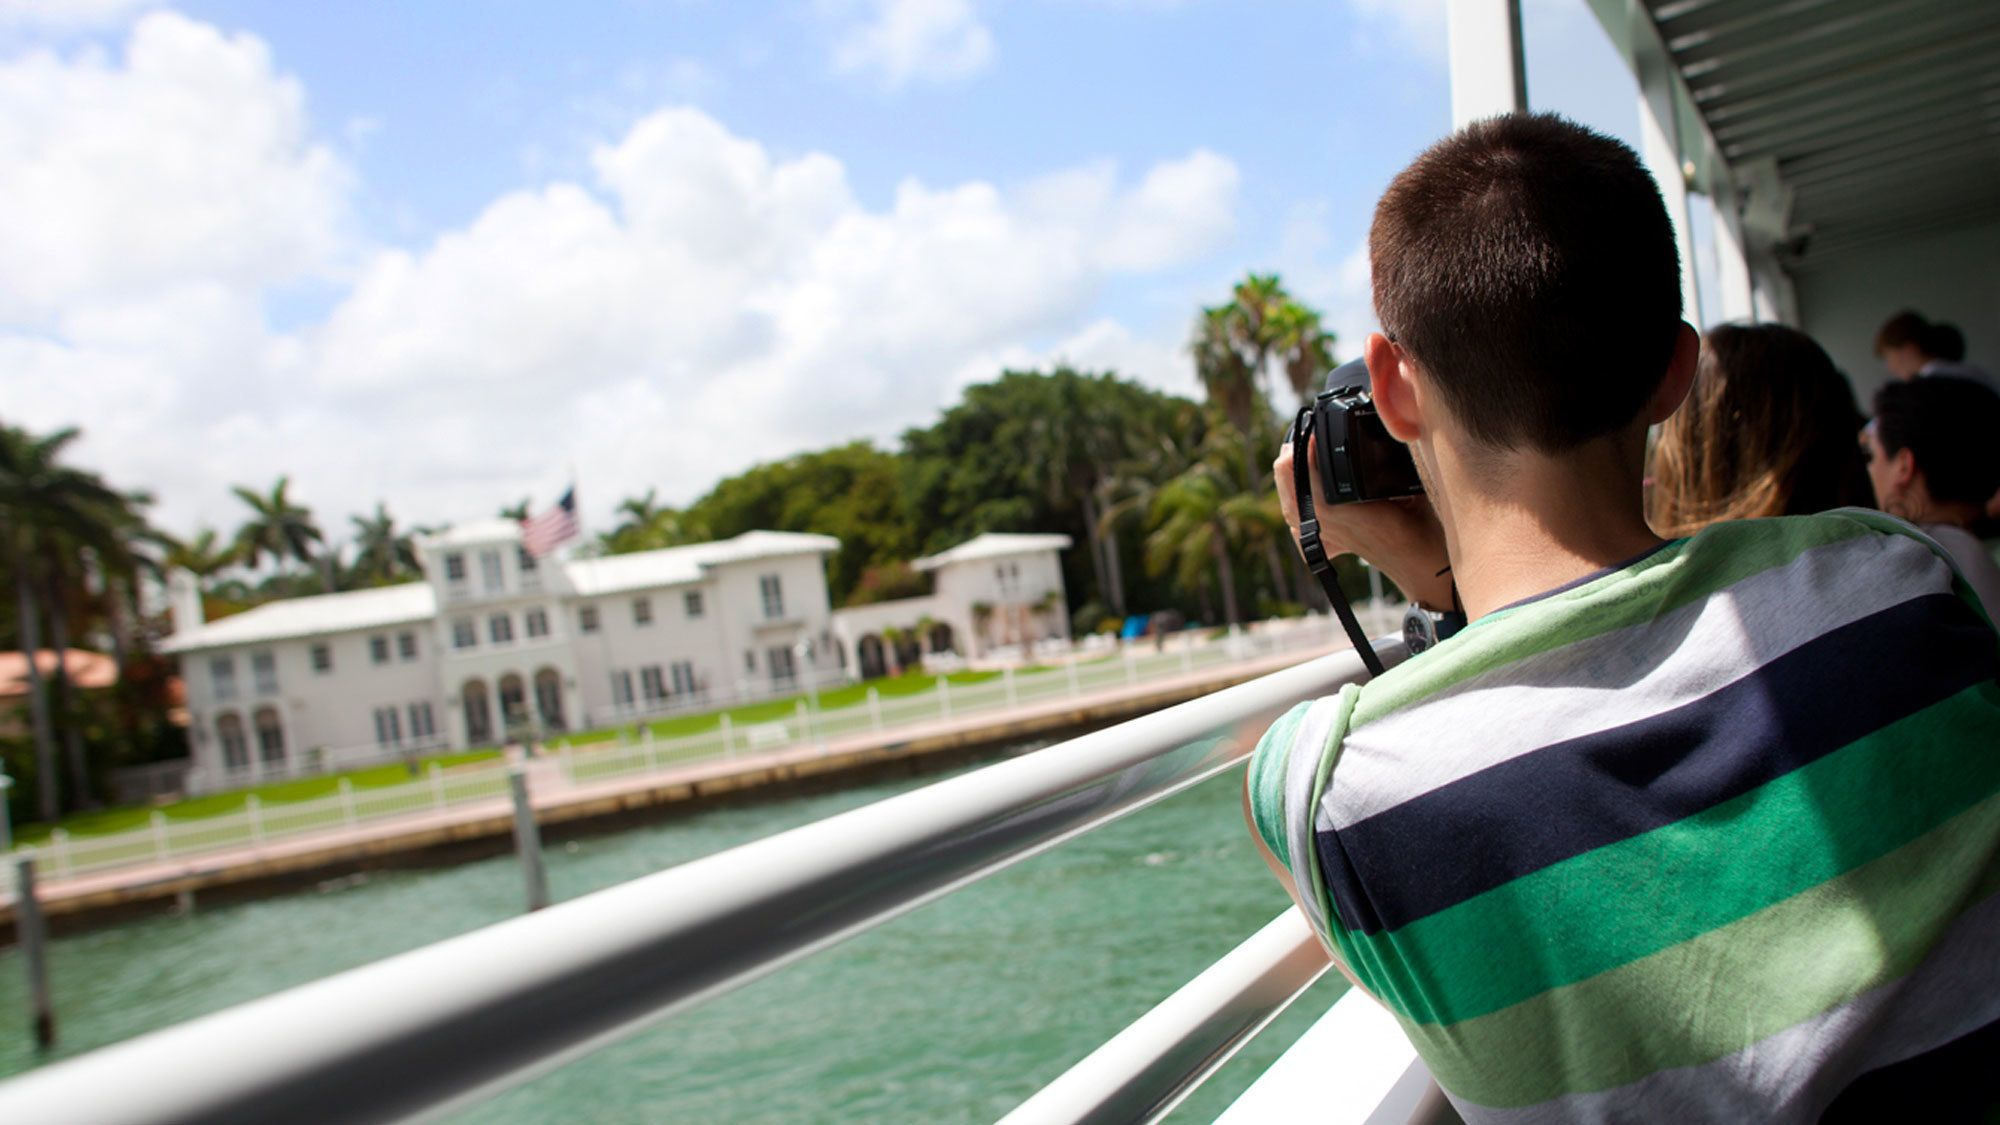 Documenting the boat tour in Miami